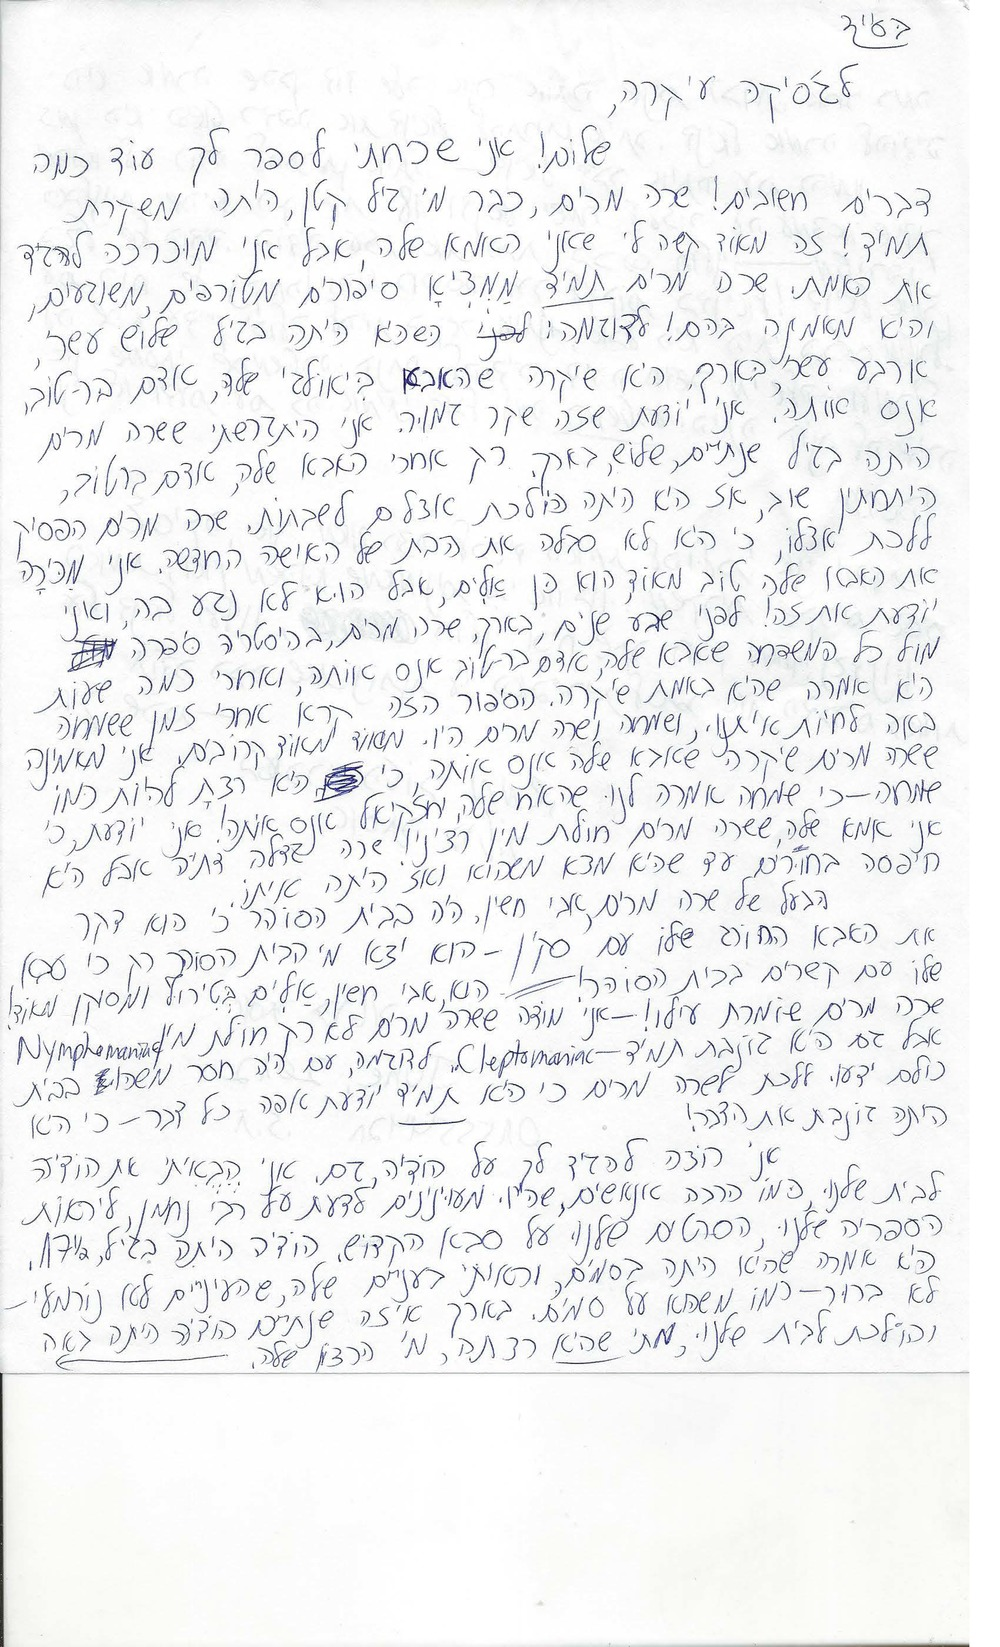 letter of E about her daughter SM, 2012 _Page_1.jpg